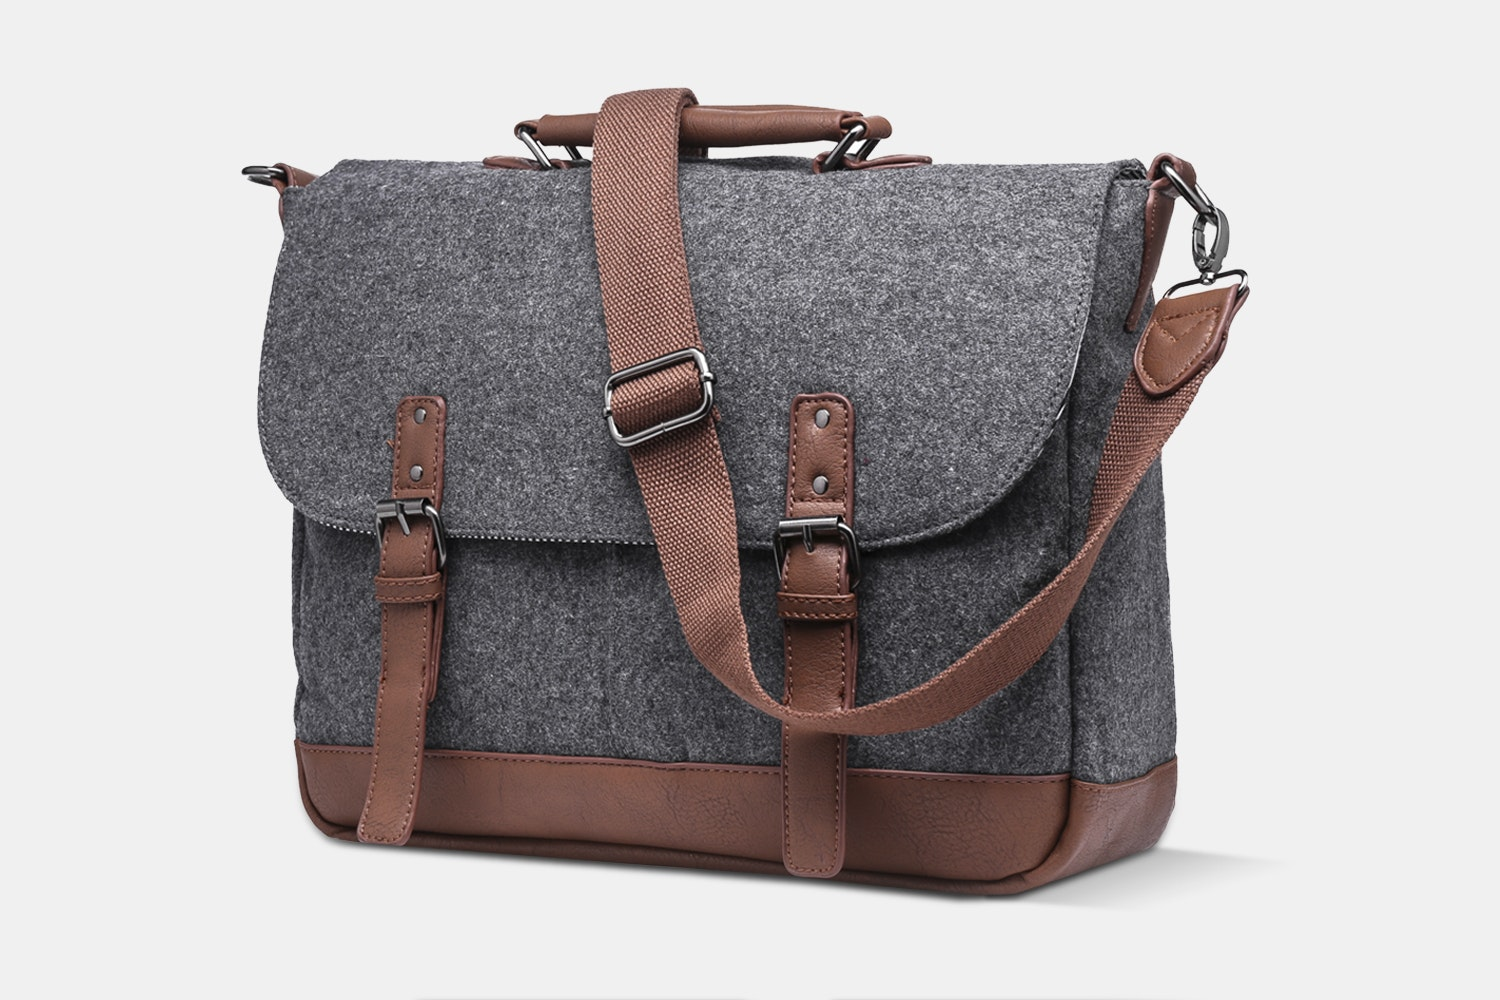 Messenger Bag (+ $15)